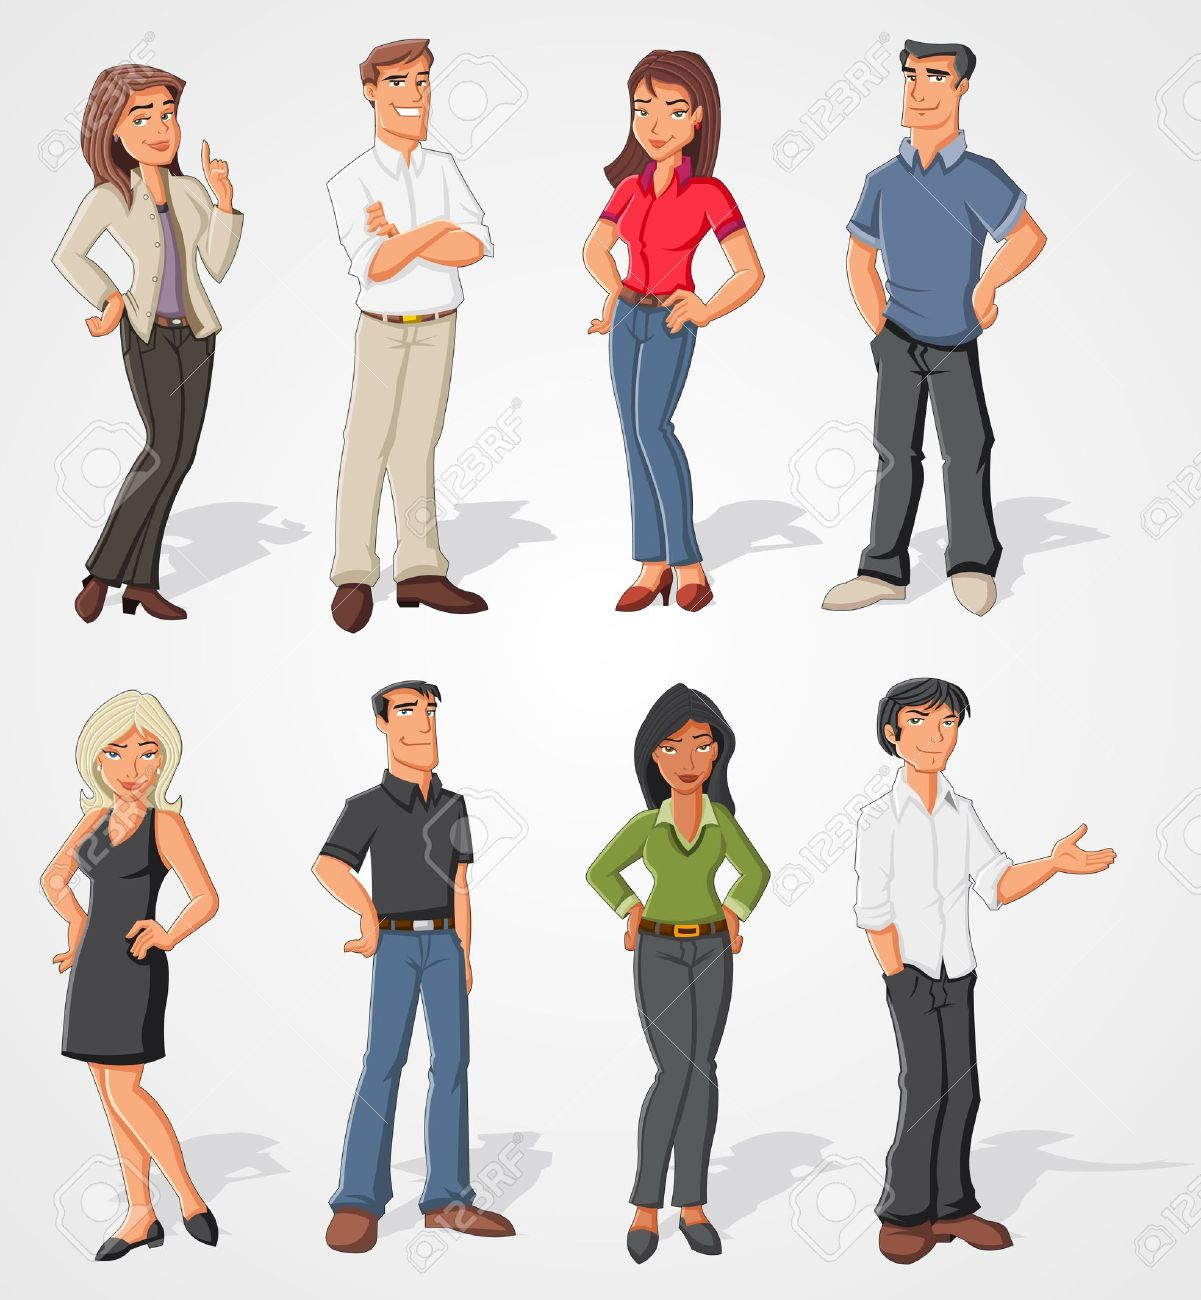 Group of cartoon business people Stock Vector - 16375230